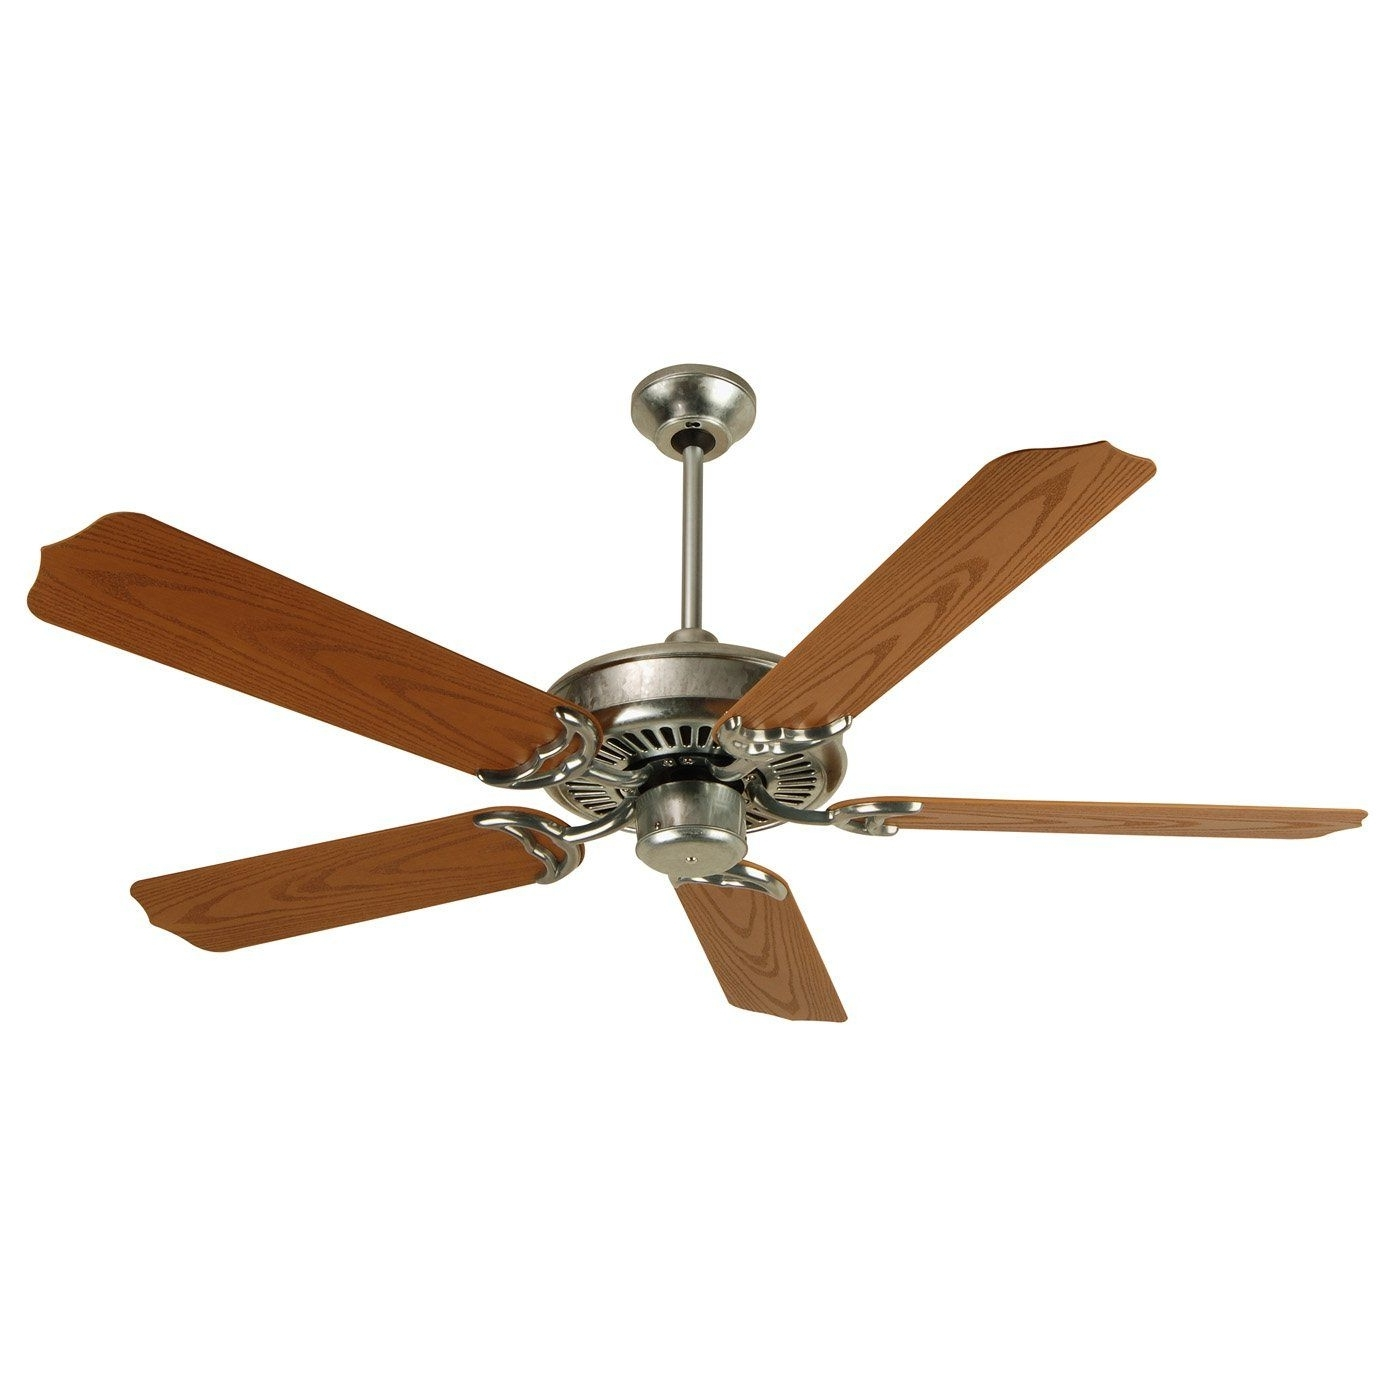 Craftmade Pf52 Porch Outdoor Ceiling Fan At Atg Stores (View 19 of 20)